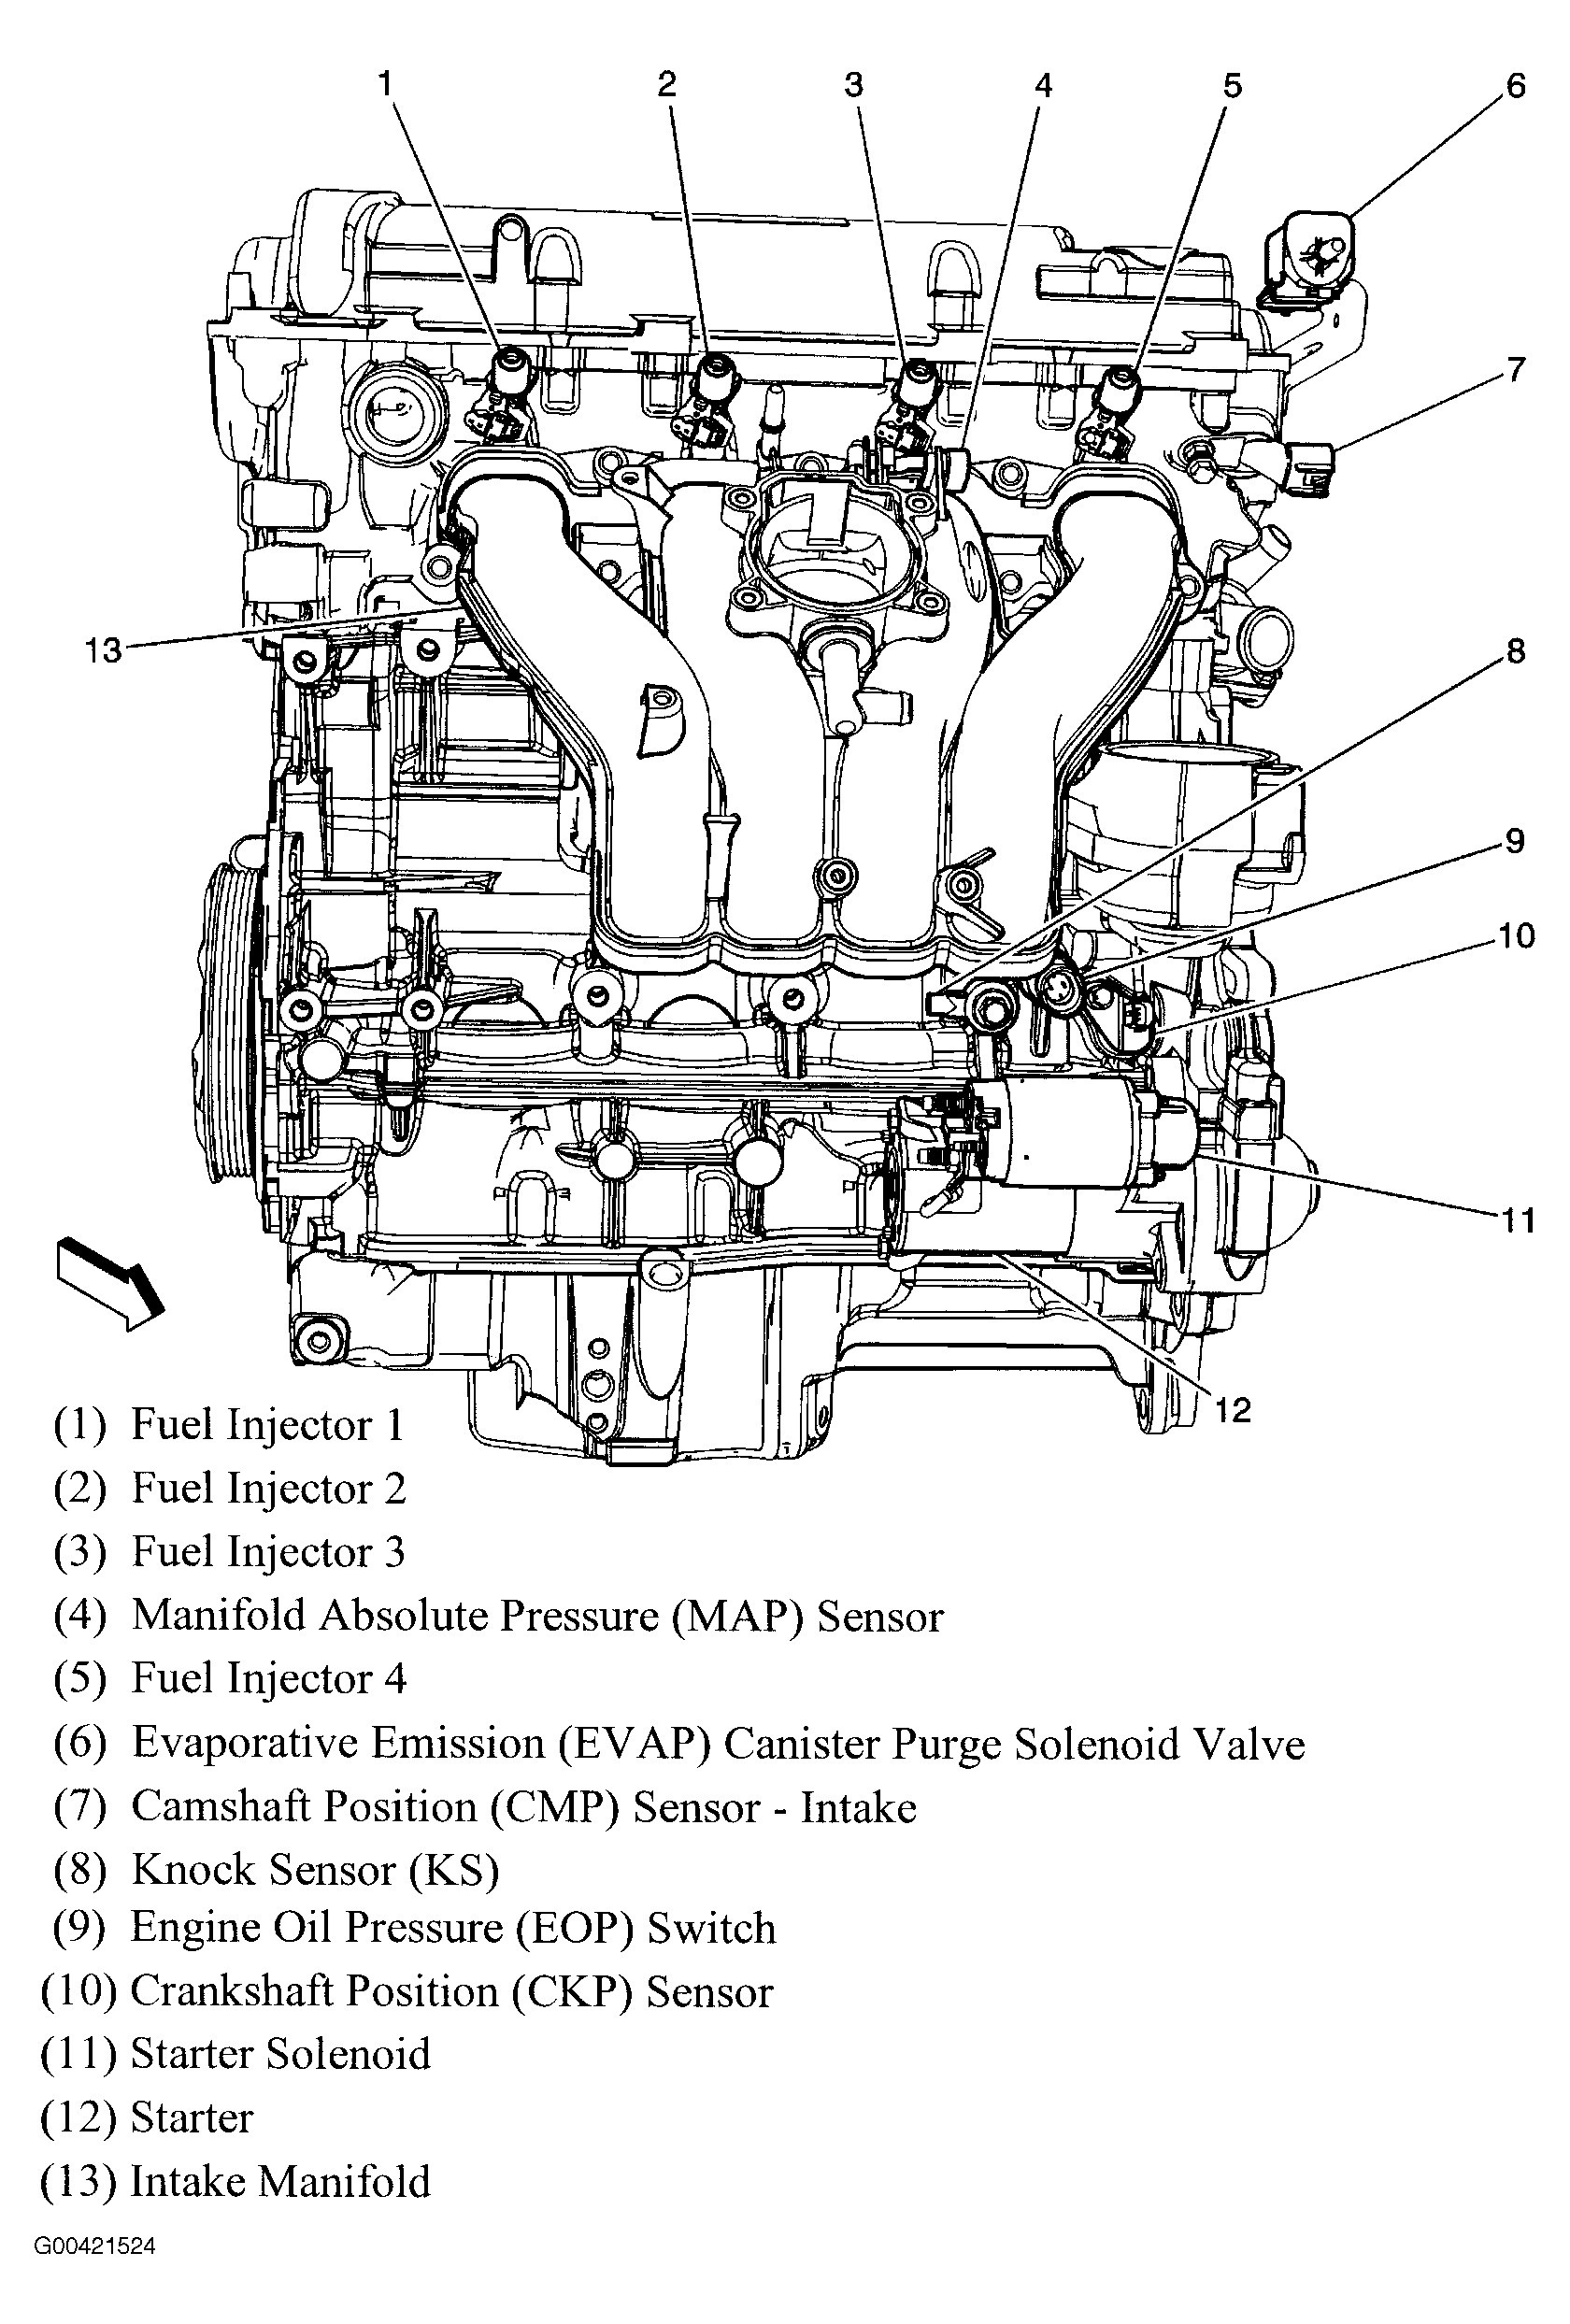 hight resolution of 2011 chevy aveo engine diagram thermostat wiring diagram 2011 chevy aveo engine diagram wiring library diagram